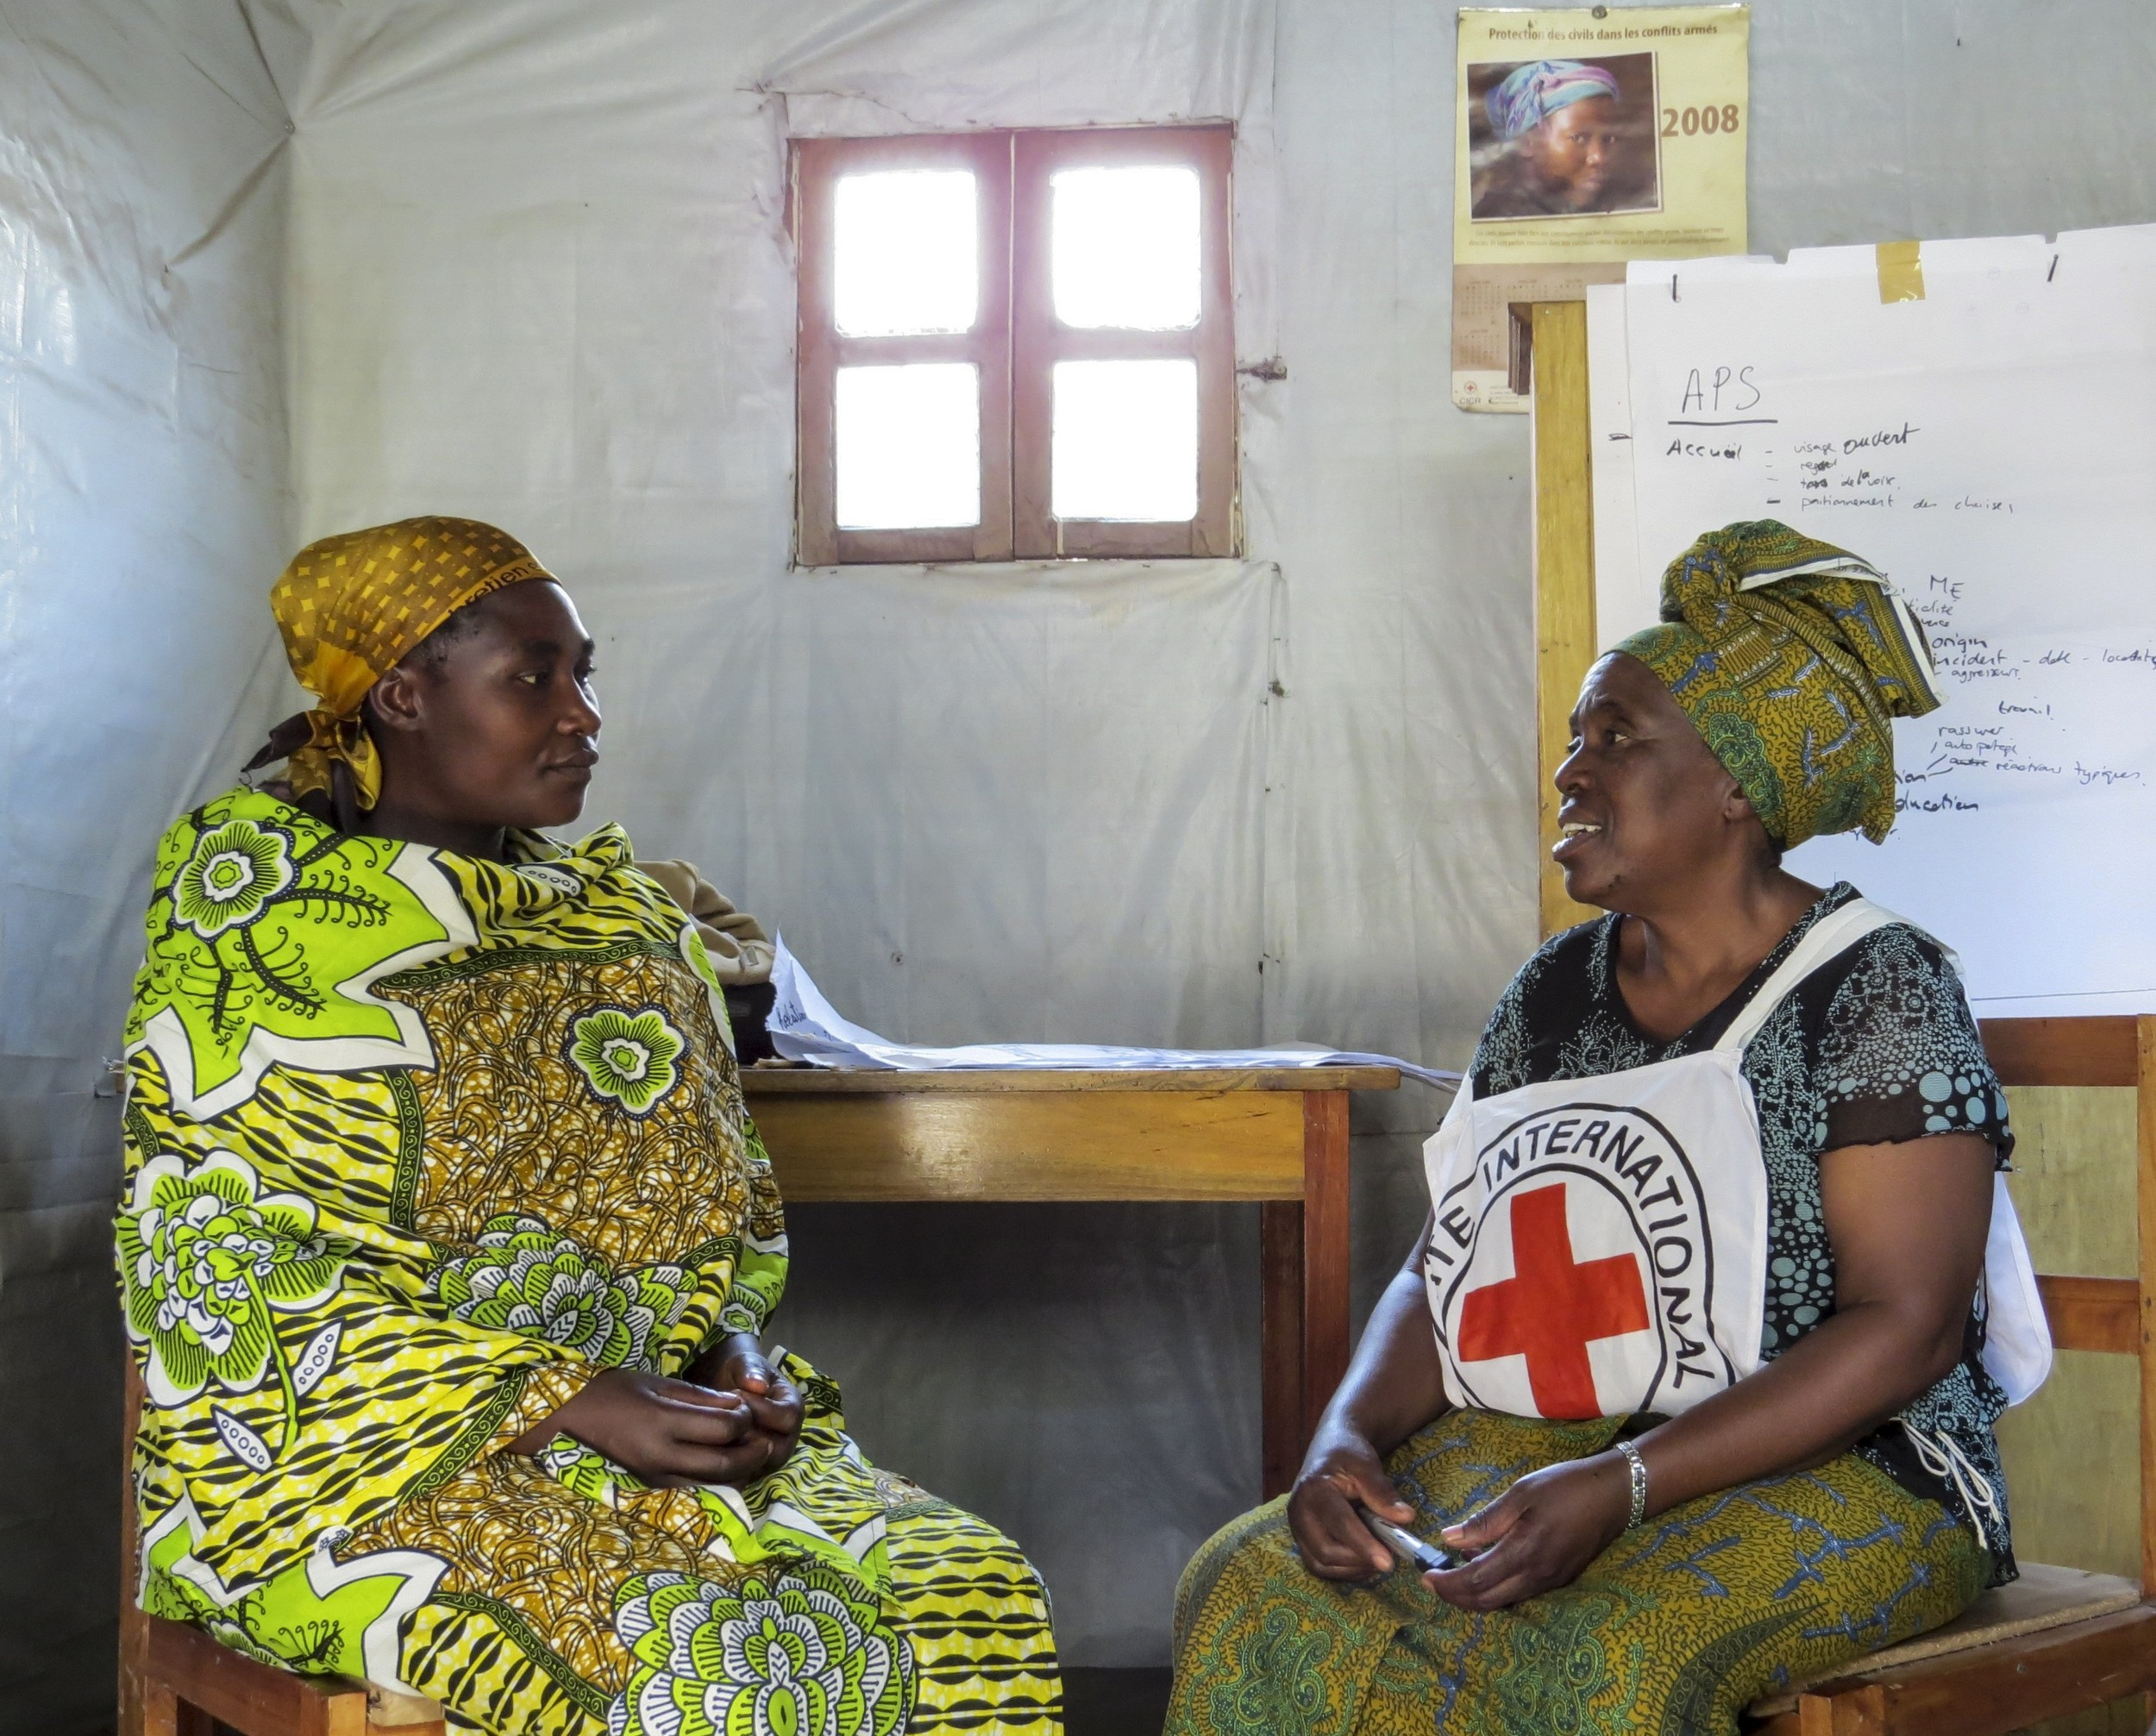 North Kivu, Rutshuru Territory, Kako, Listening House. An ICRC employee is training the psychosocial workers and teams in charge of heightening the communities' awareness of the problems of violence. ©Schindler, Elodie/ICRC